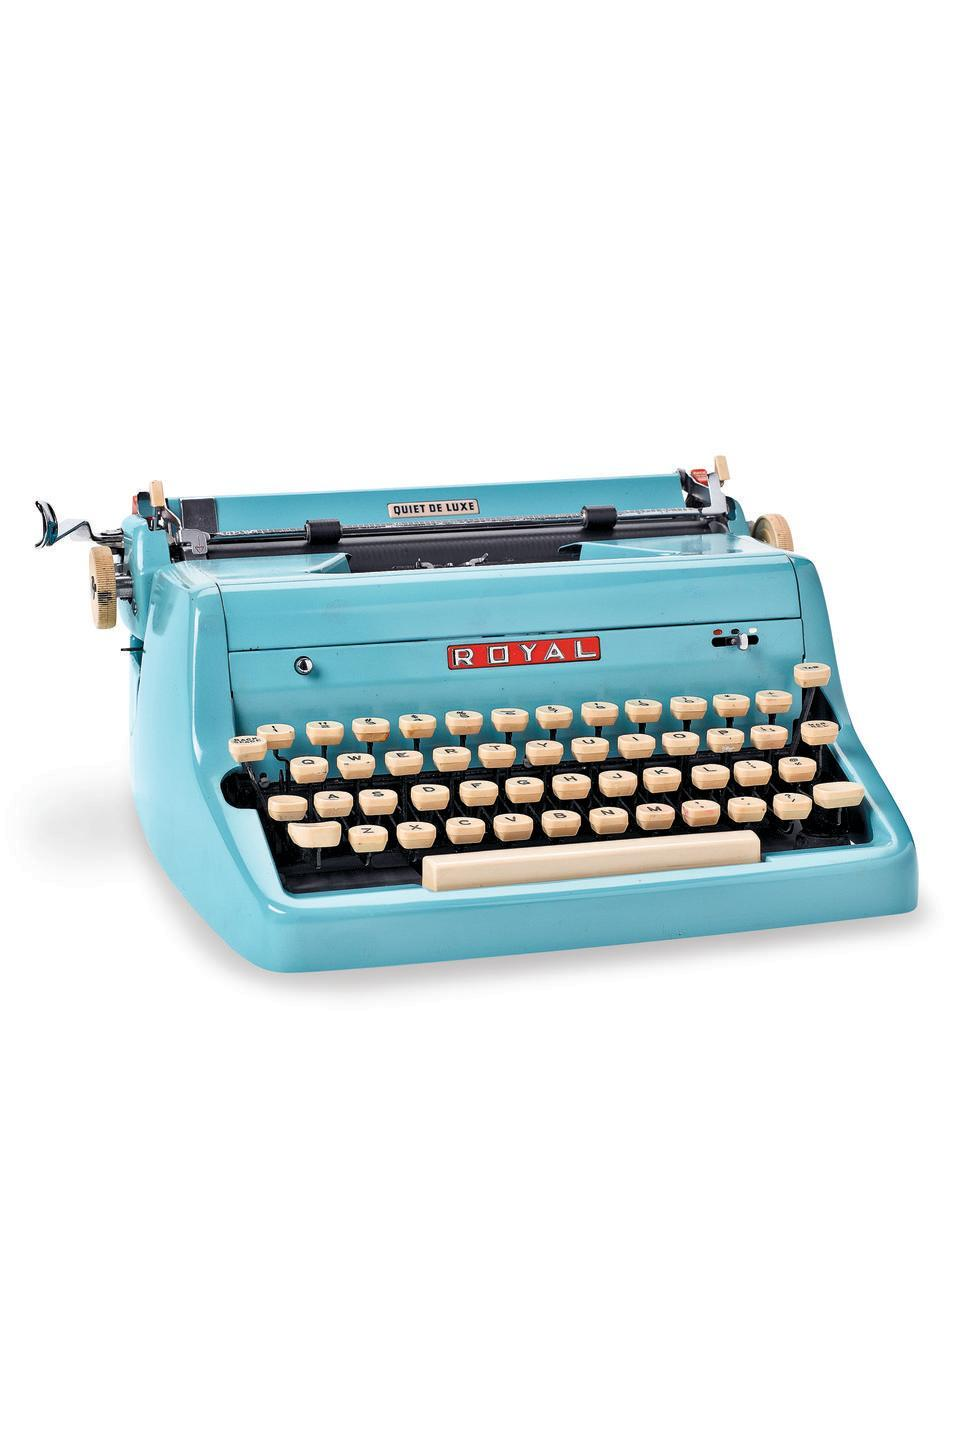 <p><strong>What it was worth (2006):</strong> $350</p><p><strong>What it's worth now:</strong> $350</p><p>After many ownership and business changes, Royal Typewriter Company is now known as Royal Consumer Information Products Inc., and still produces computer products today.</p>